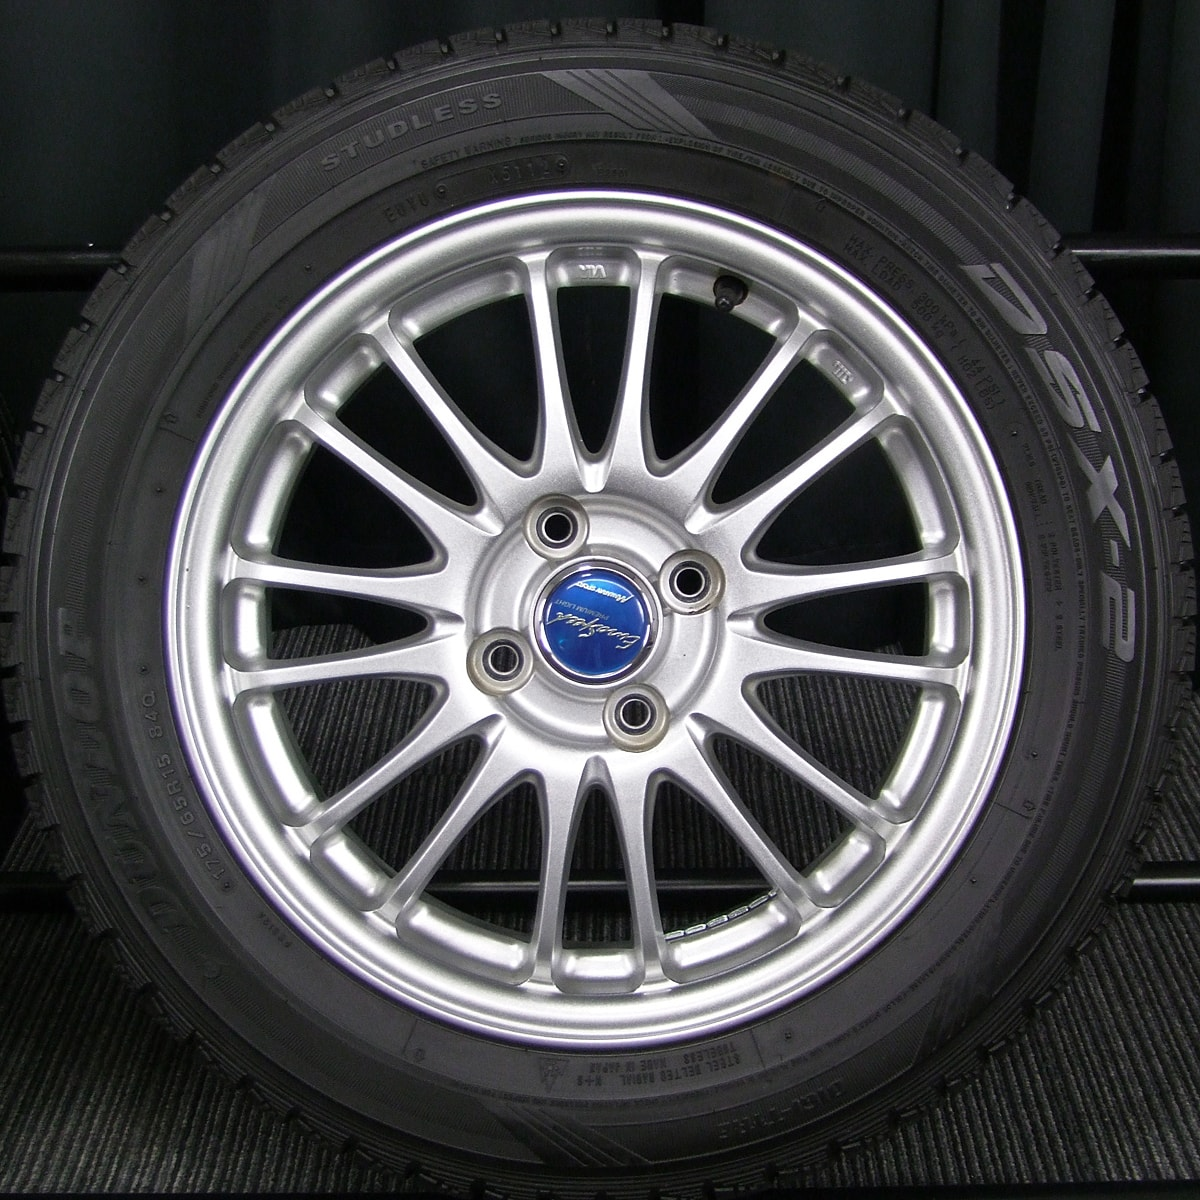 MANARAY SPORT EuroSpeed BC PREMIUM LIGHT シルバー DUNLOP DSX-2 175/65R15 4本SET